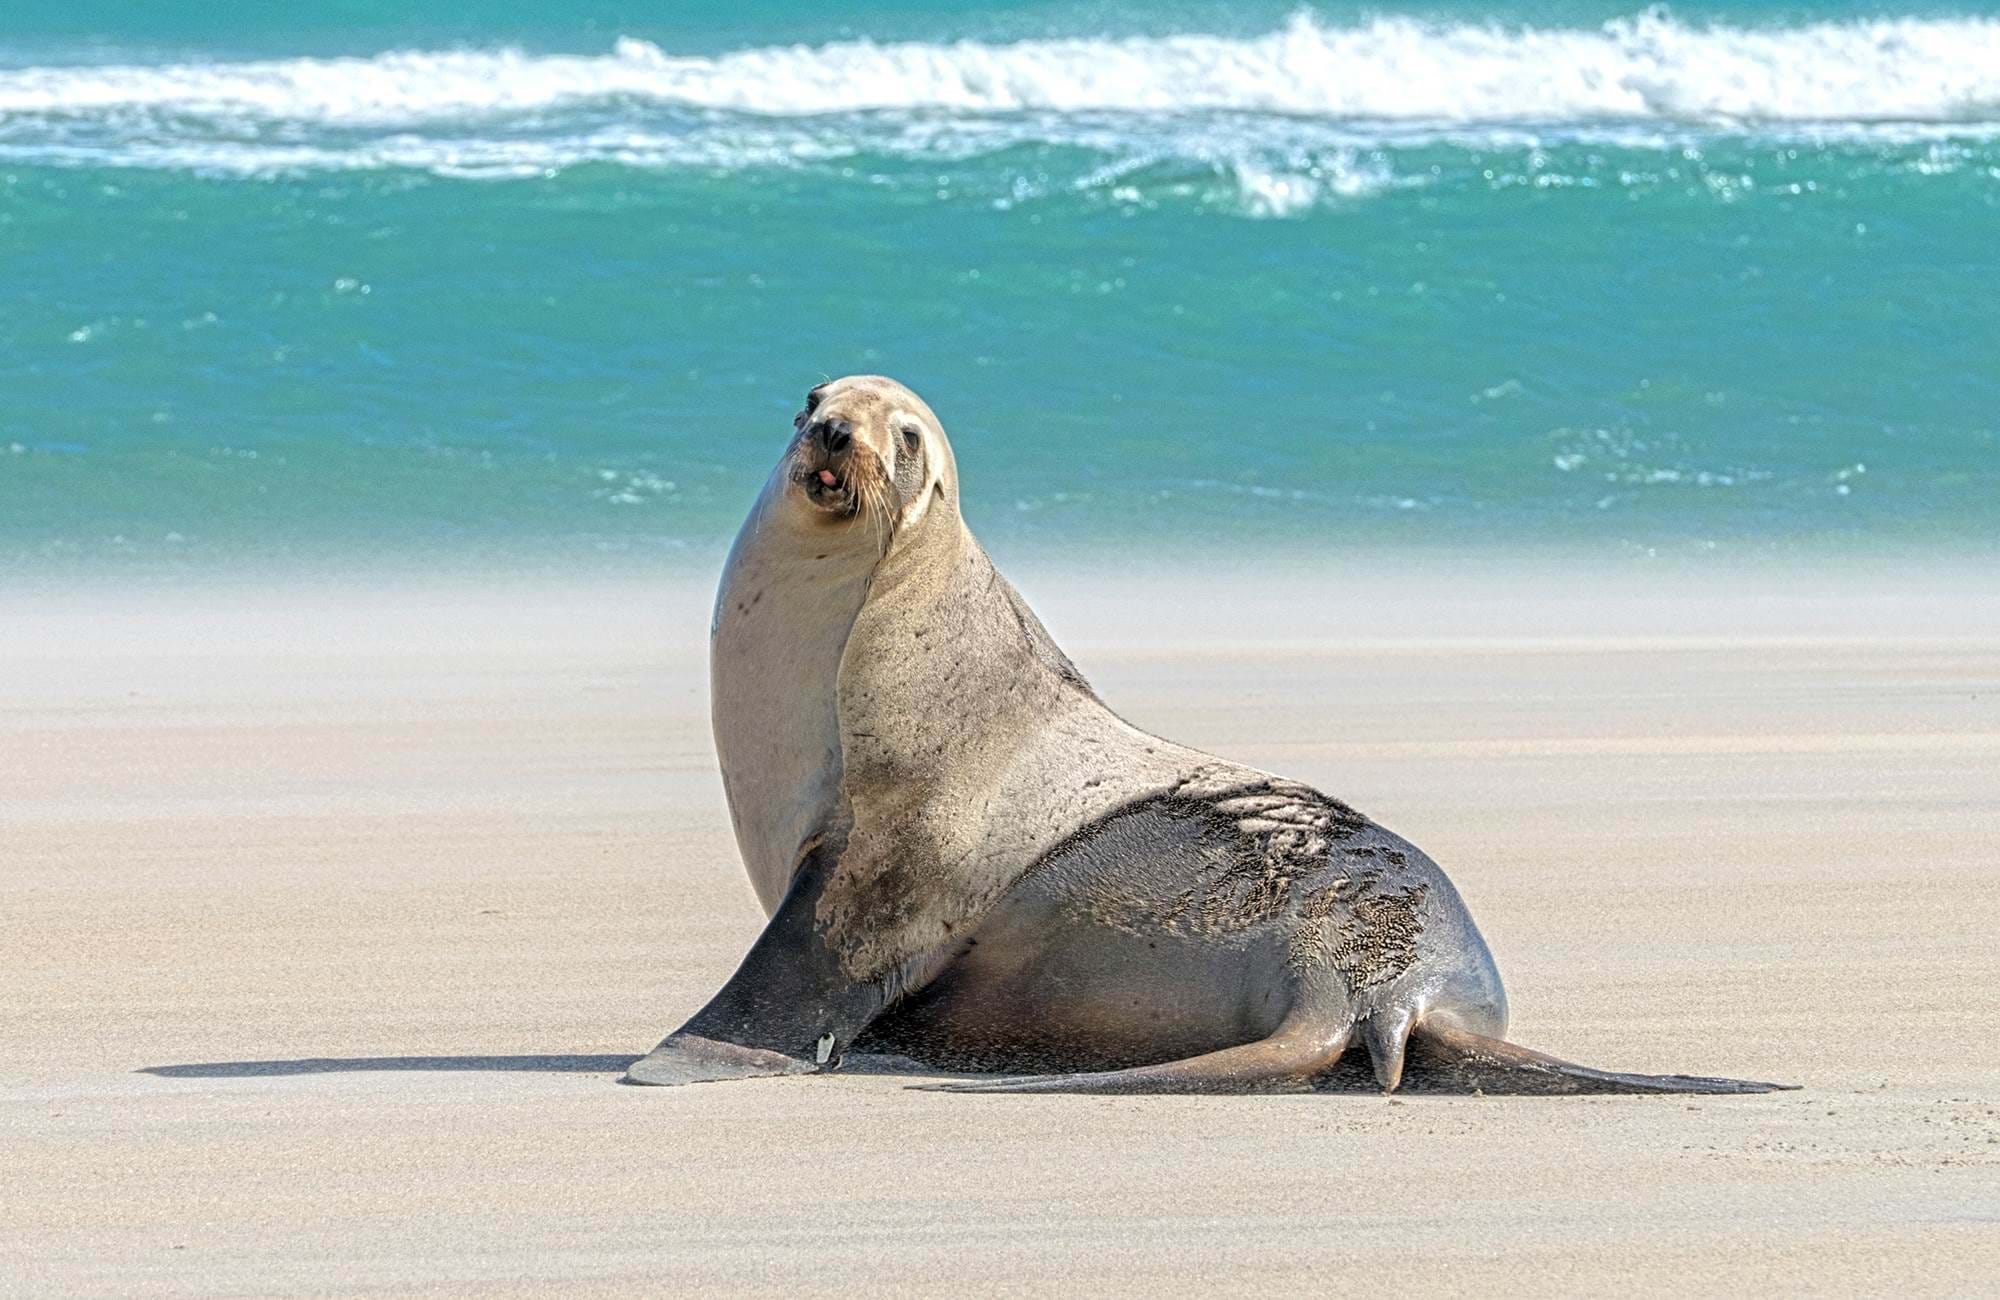 A sea lion on the beach in New Zealand